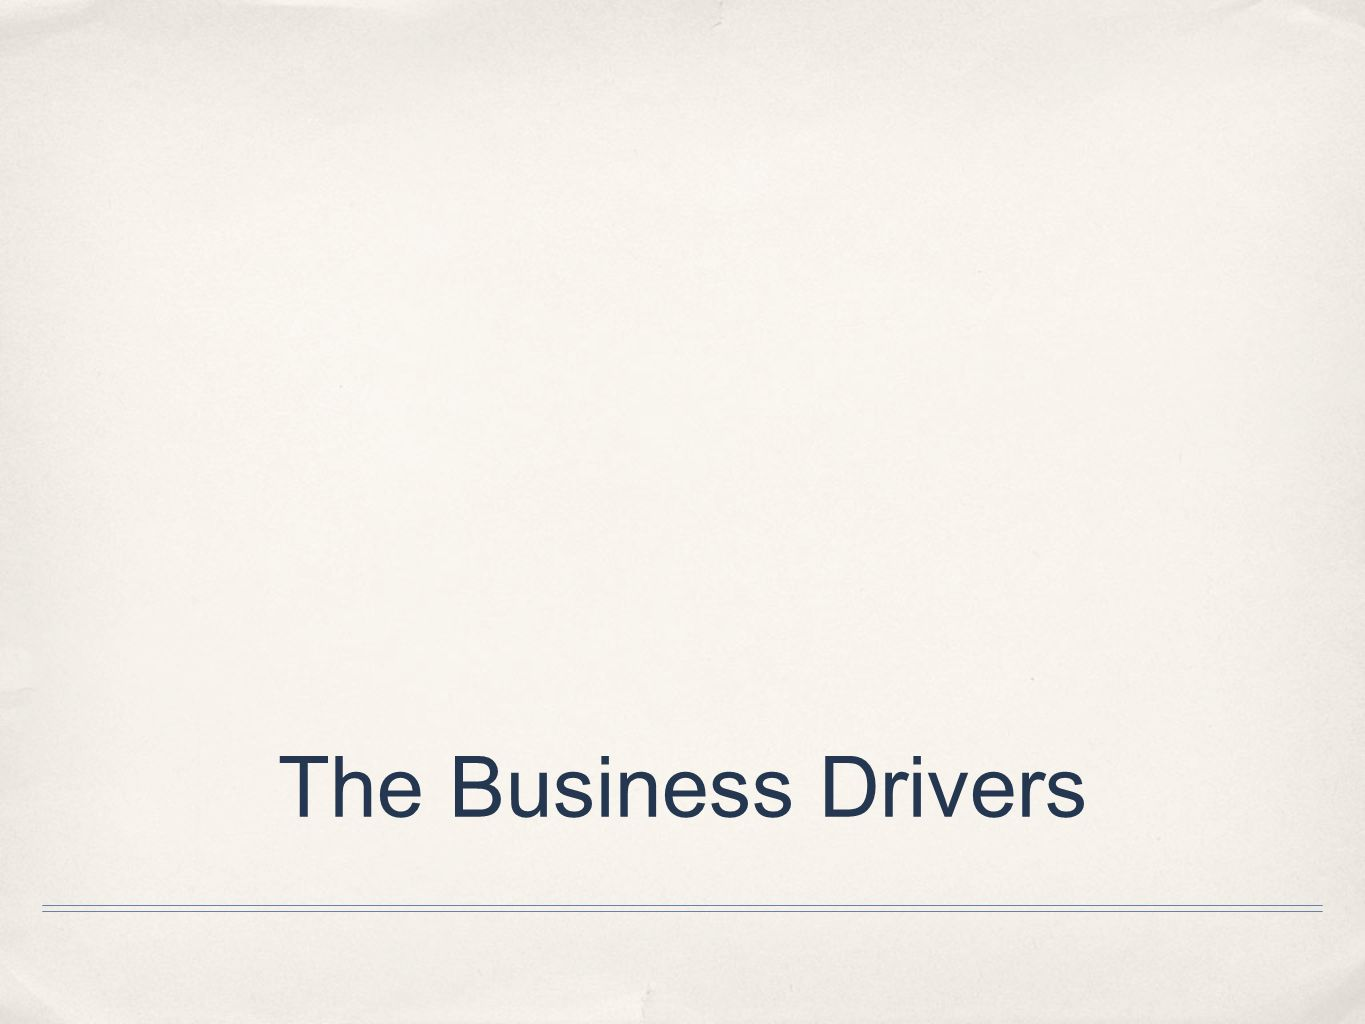 The Business Drivers